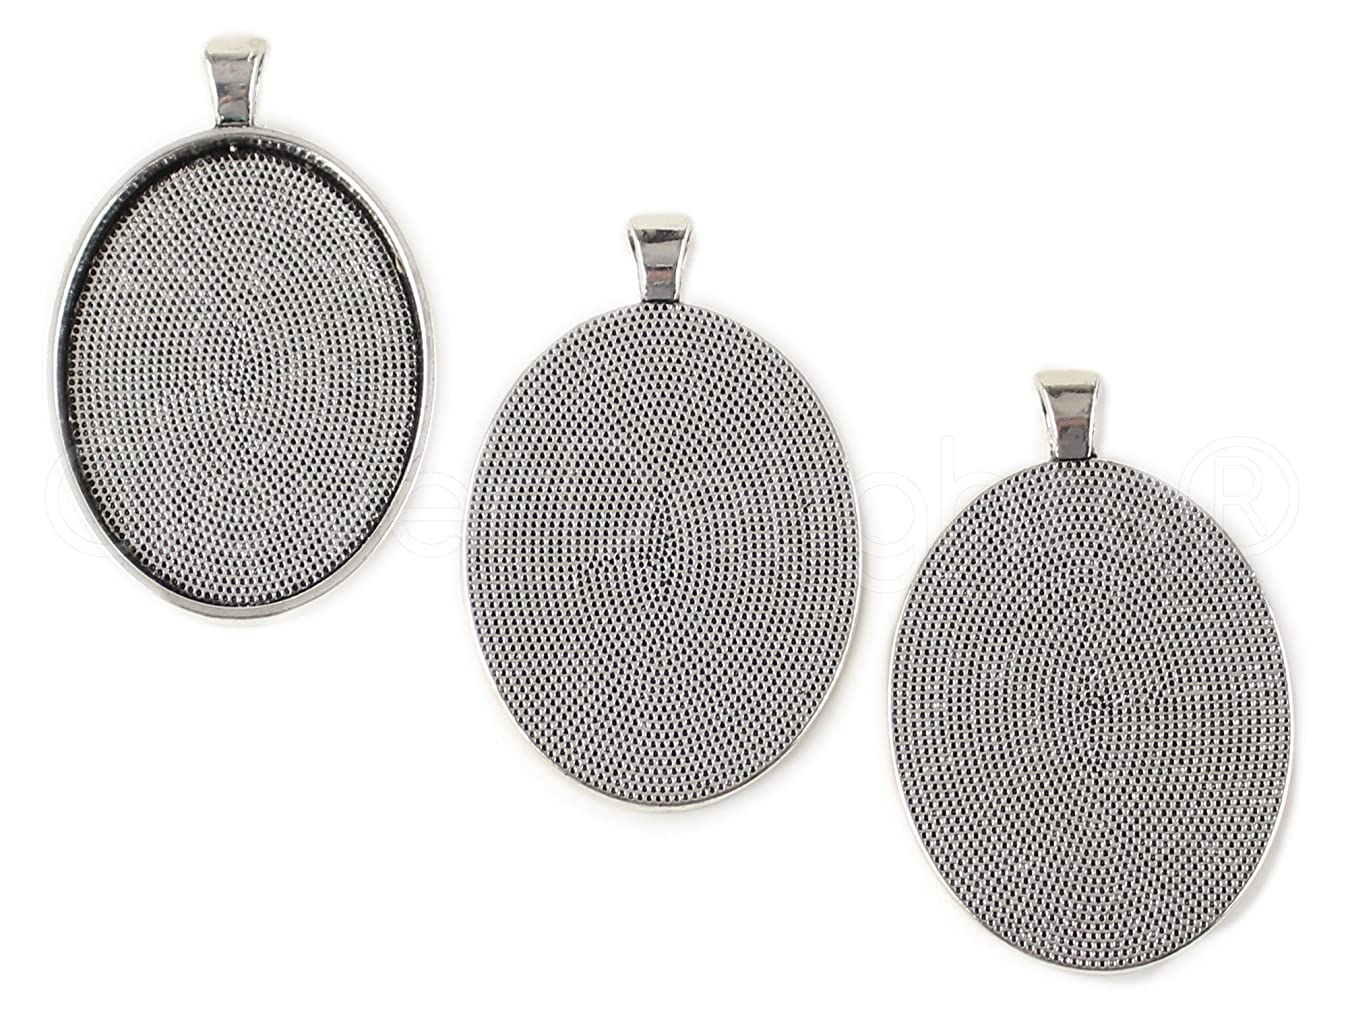 CleverDelights 20 Oval Pendant Trays - Antique Silver Color - 30x40mm - Pendant Blanks Settings s3885844336